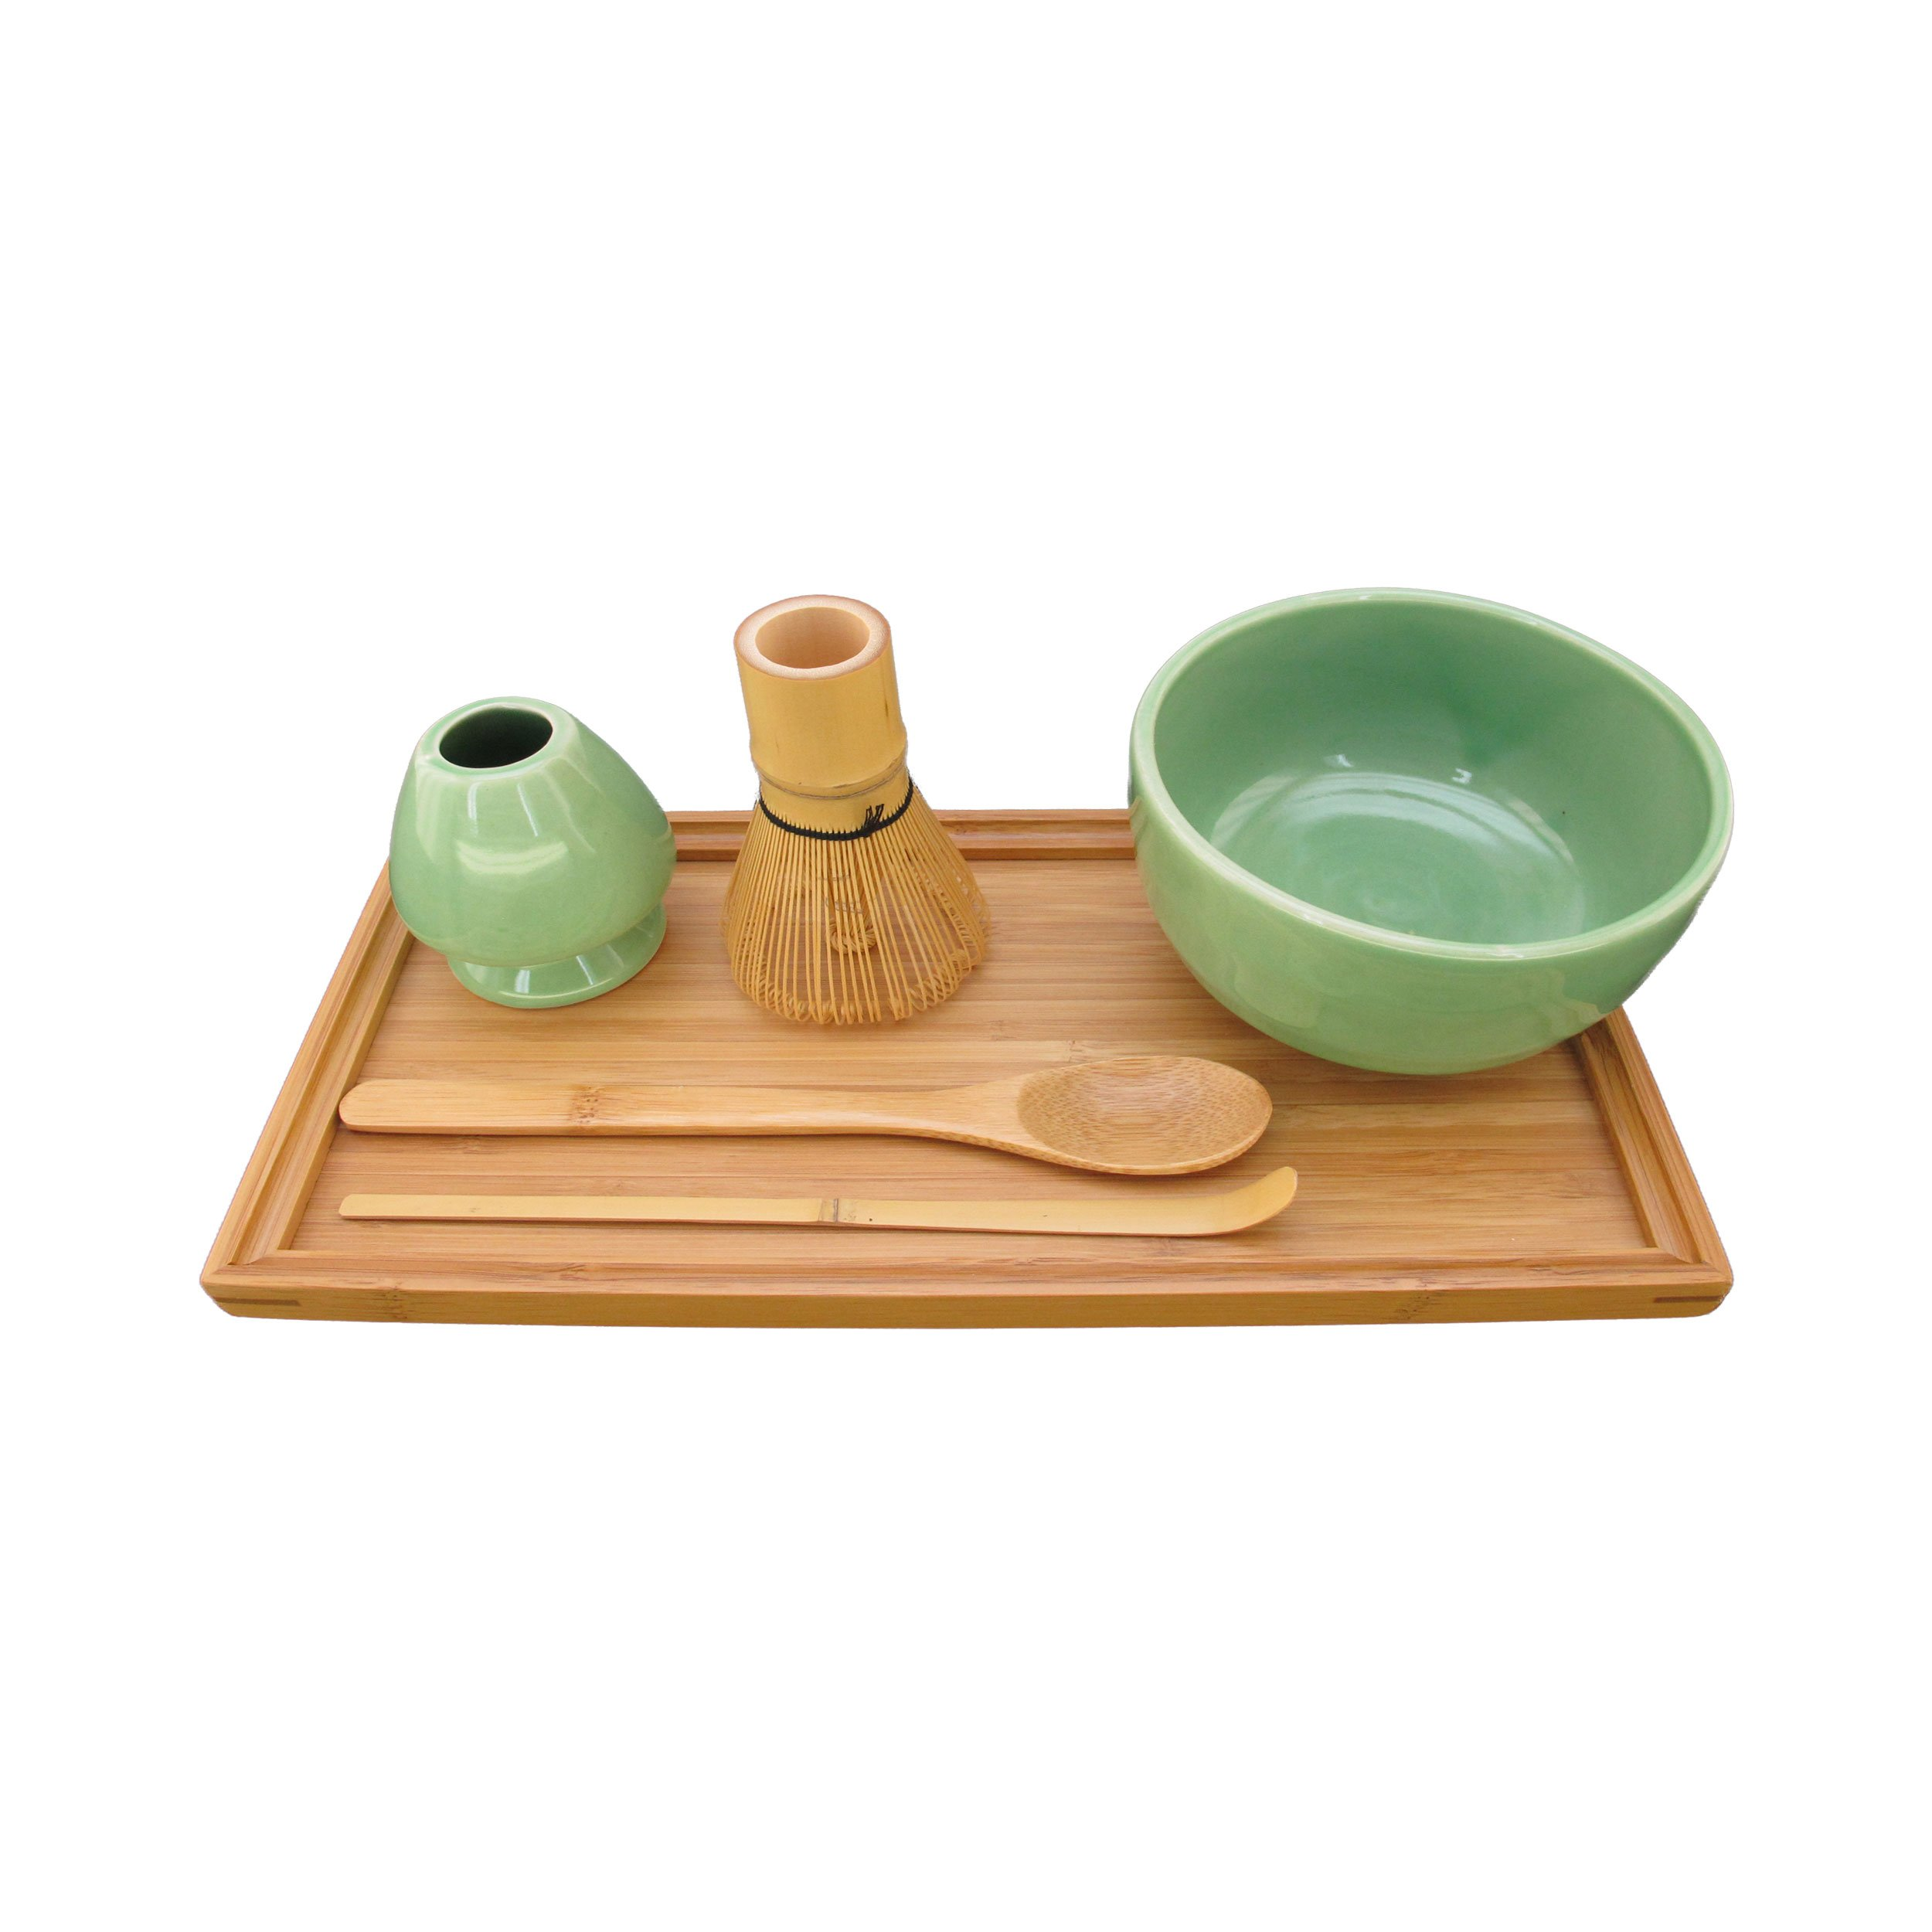 BambooMN Brand - Matcha Bowl Set (Includes Bowl, Rest,Tea Whisk, Chasaku, Tea Spoon & Tray) 1 Set Soft Light Green